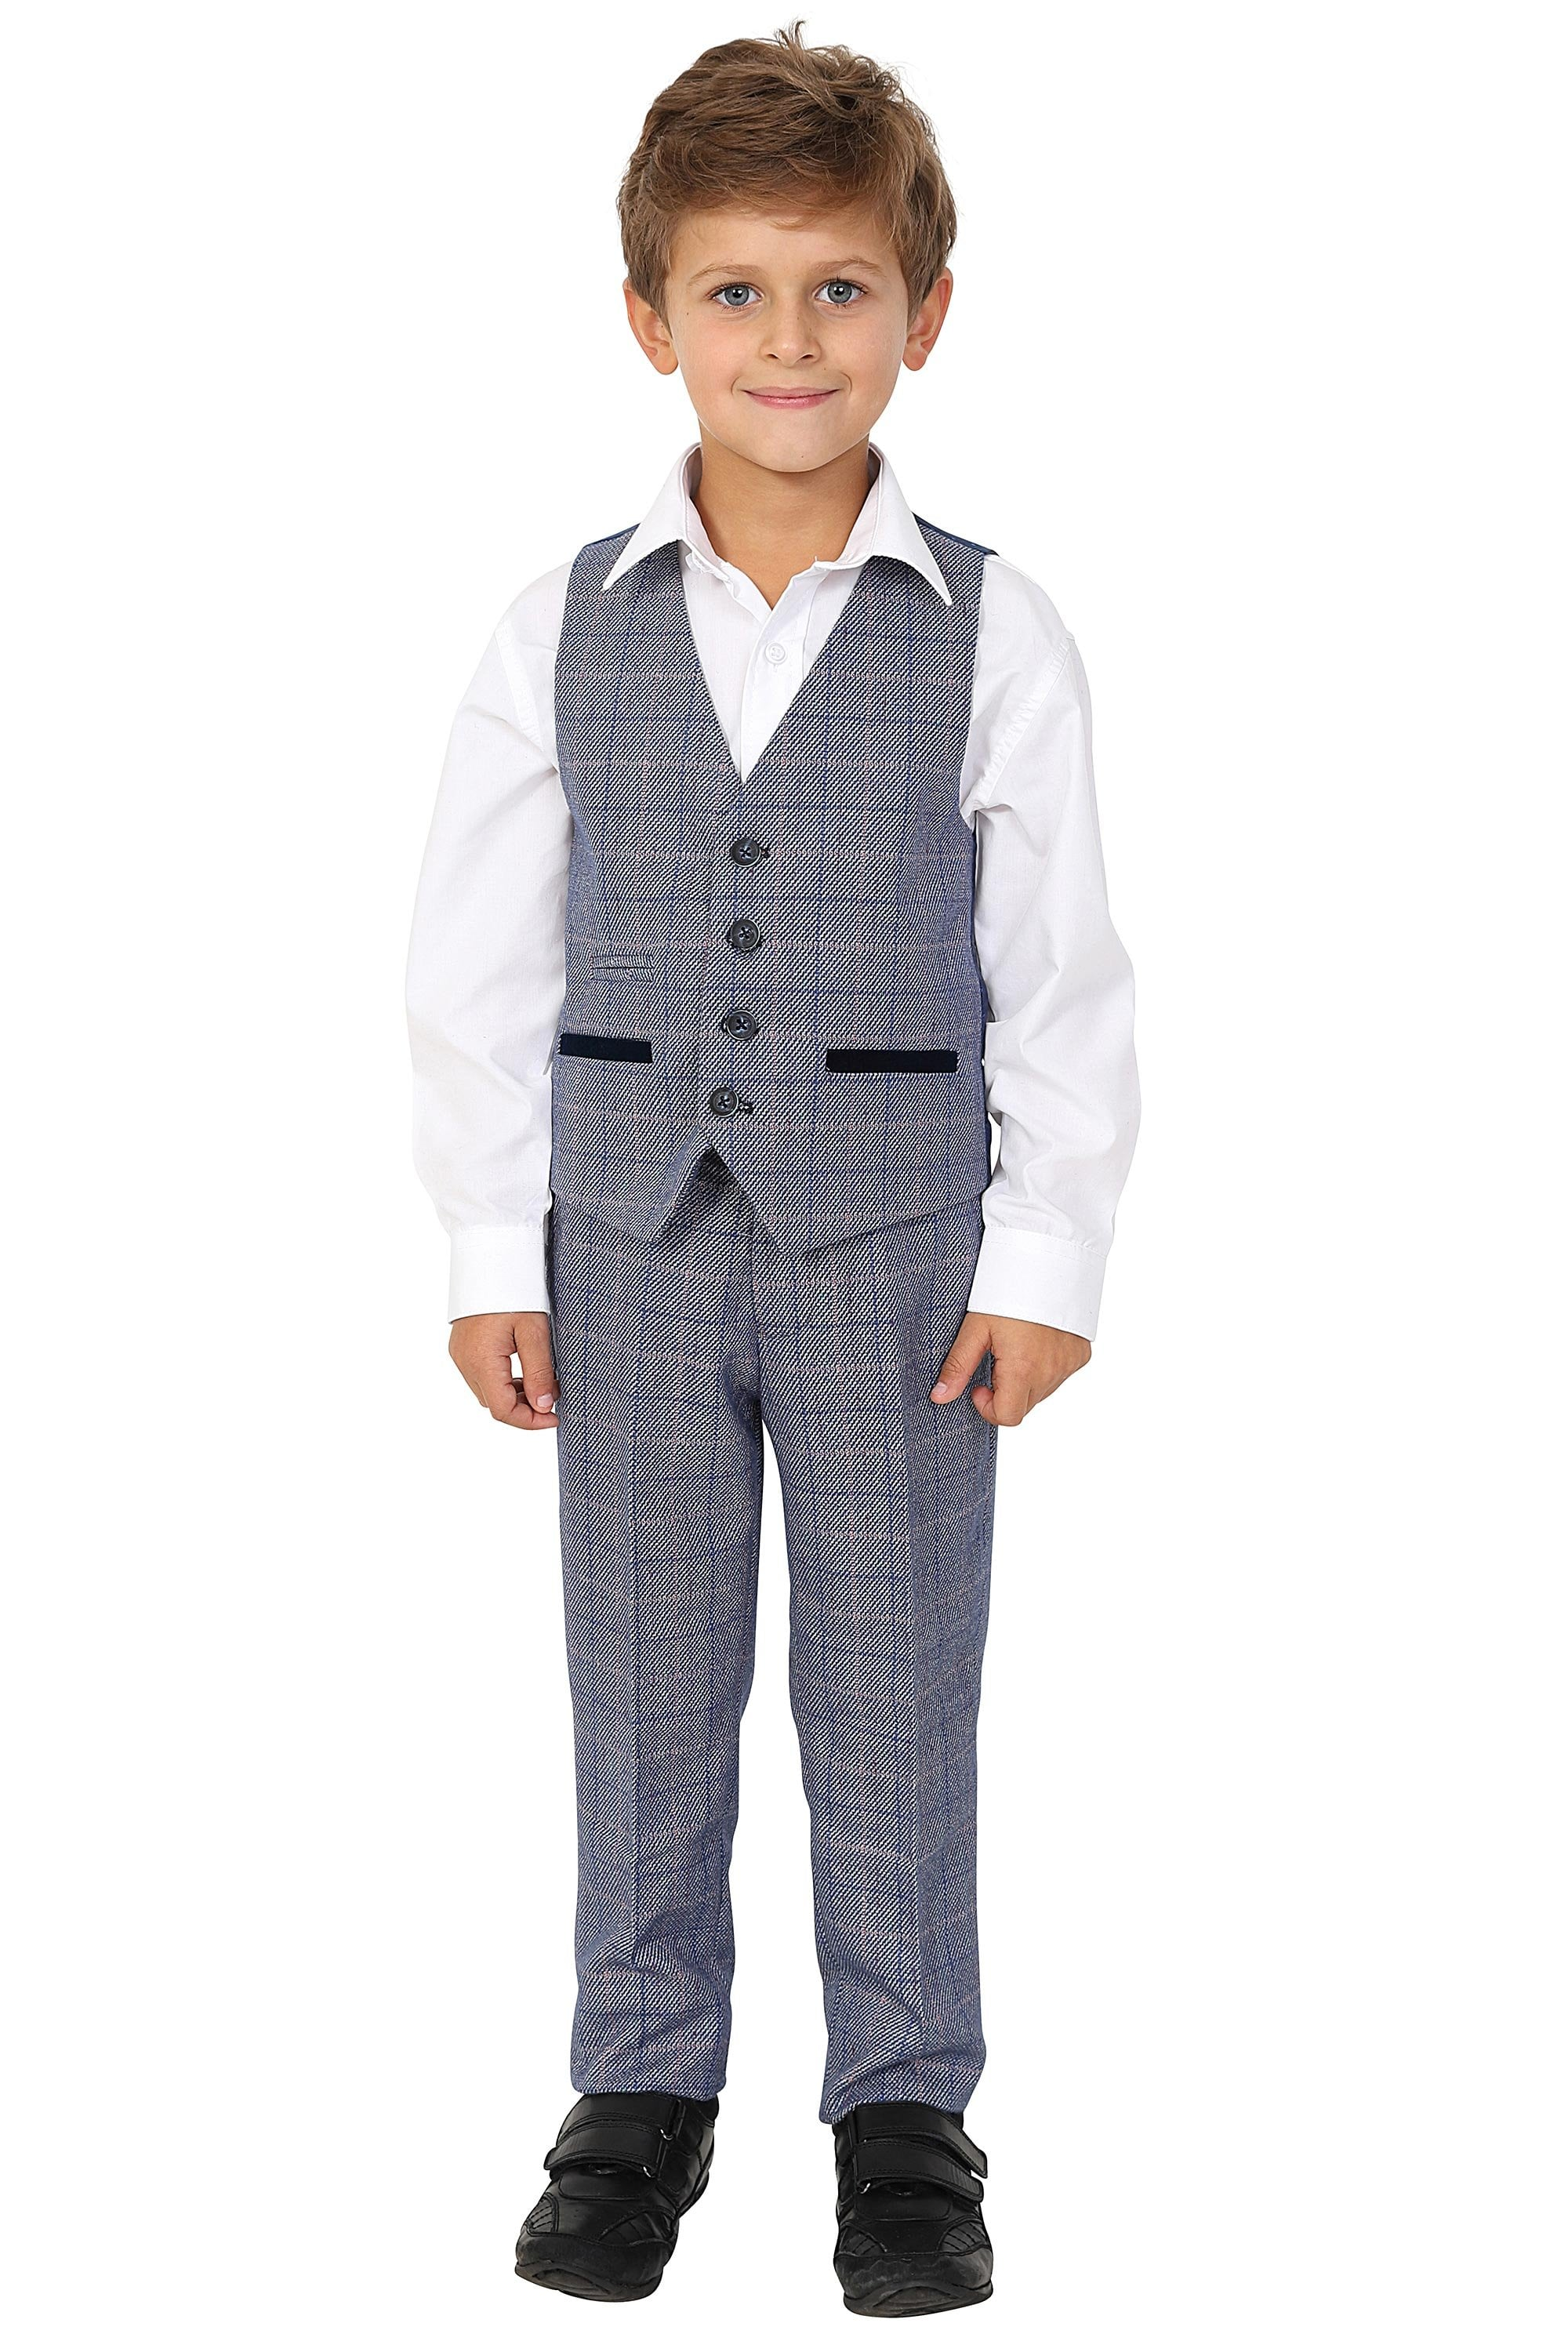 limited guantity drop shipping most desirable fashion Marc Darcy Kids Boys Hilton Blue Check Tweed Three piece Suit